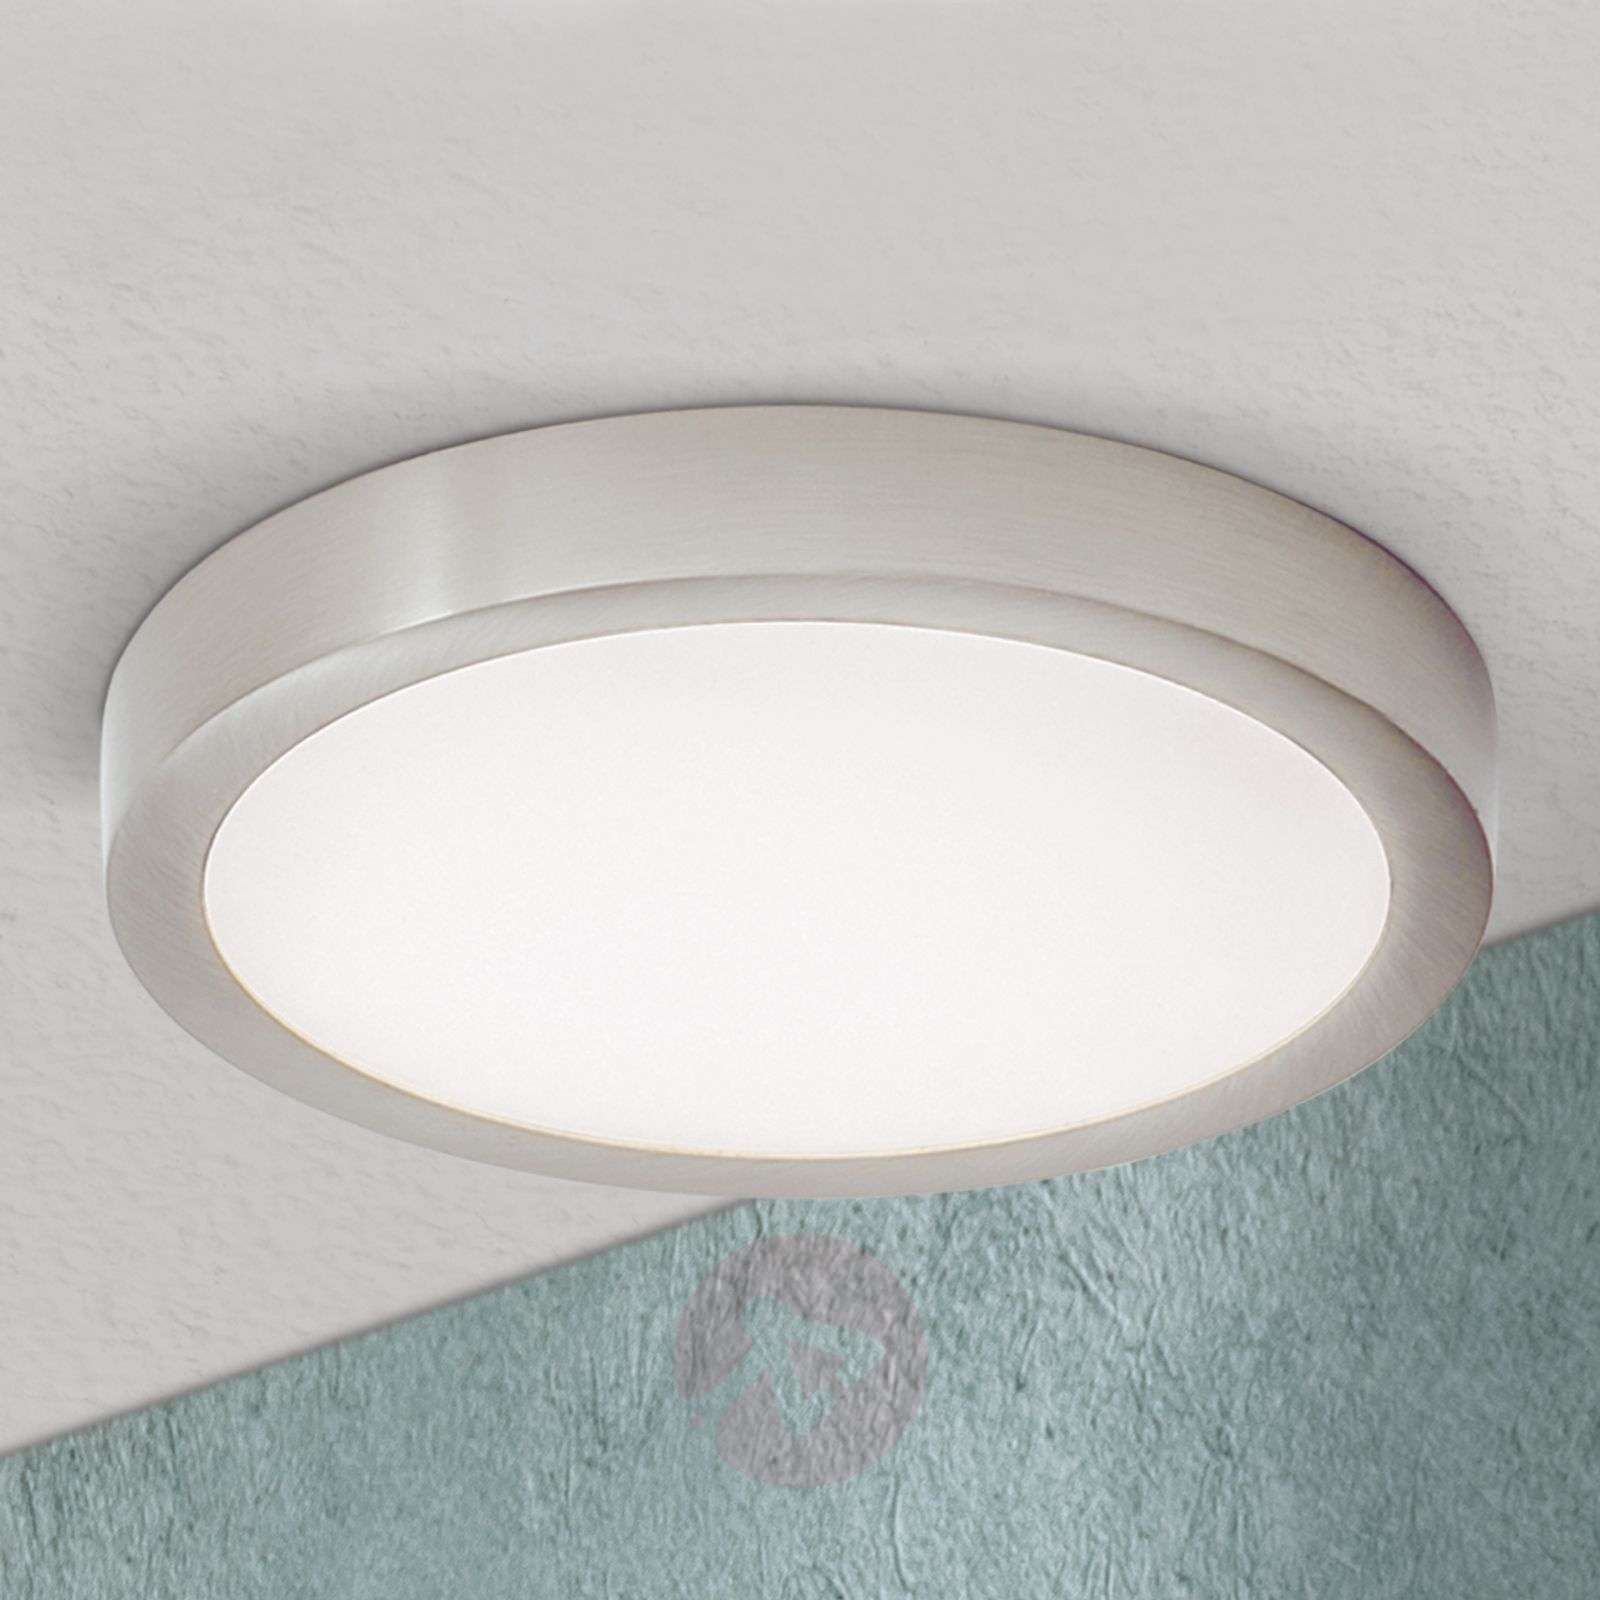 Very Flat Led Ceiling Light Vika Lights Co Uk